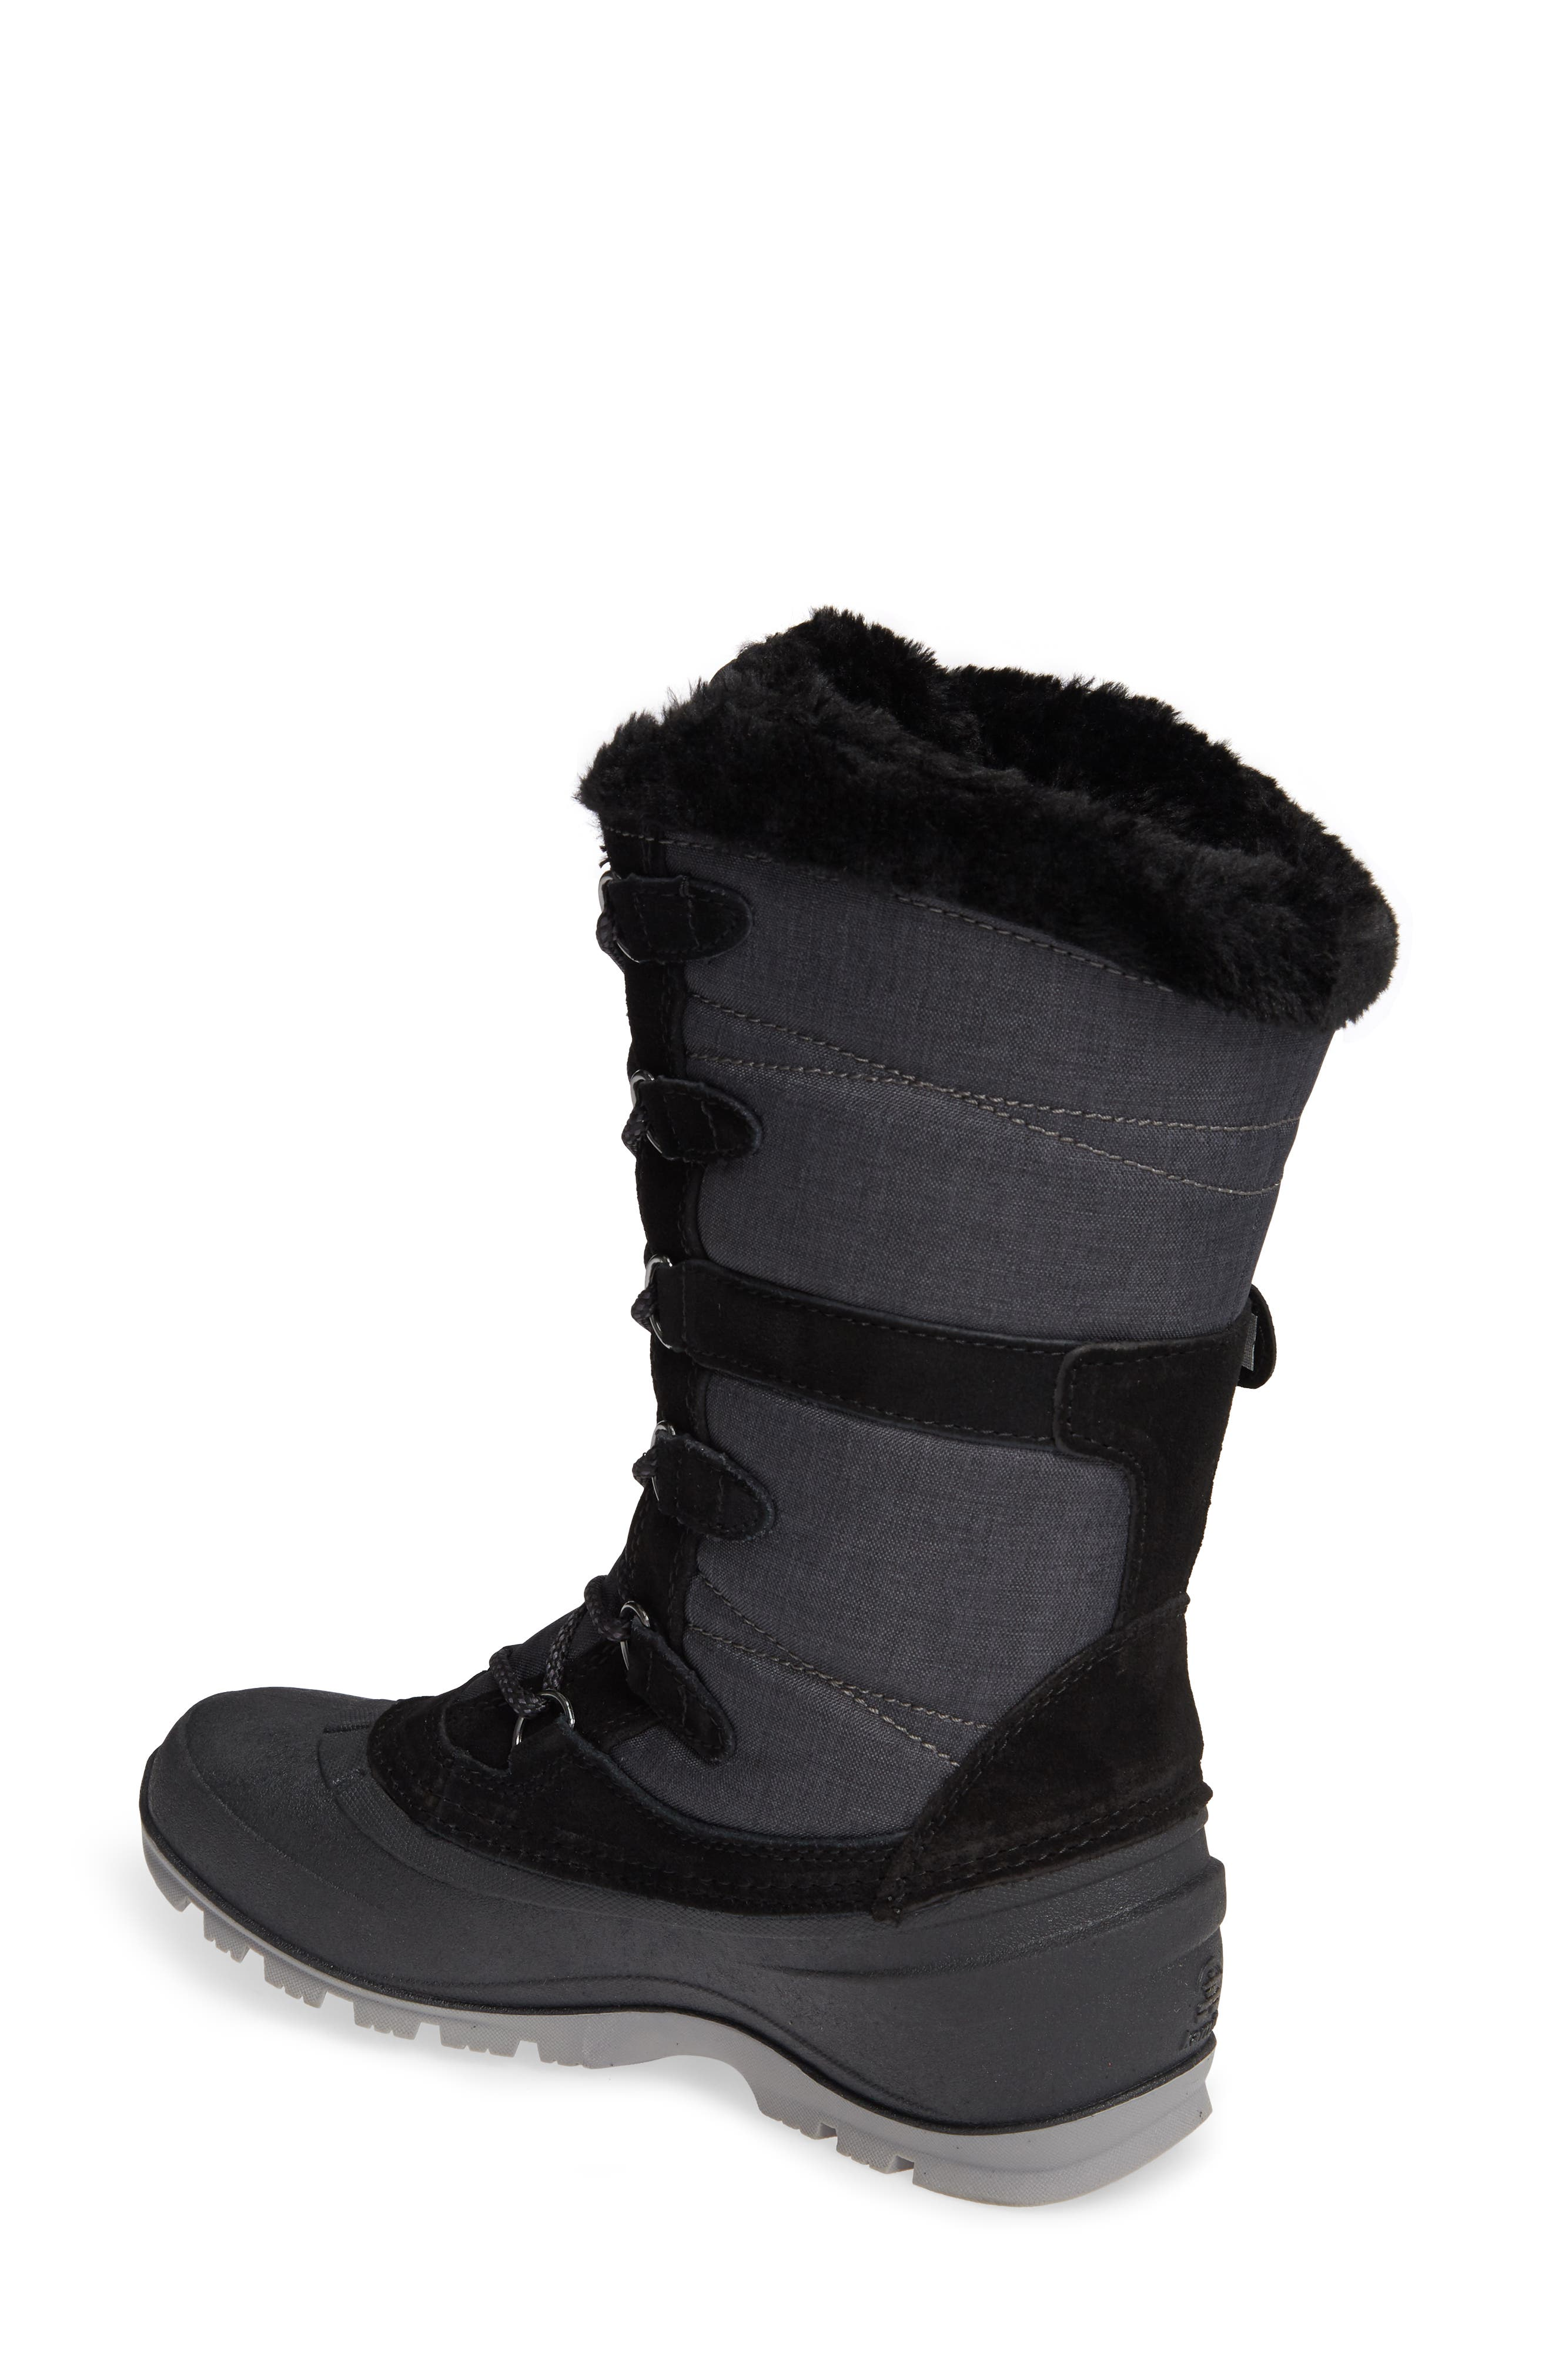 Snovalley2 Waterproof Thinsulate<sup>®</sup>-Insulated Snow Boot,                             Alternate thumbnail 2, color,                             BLACK